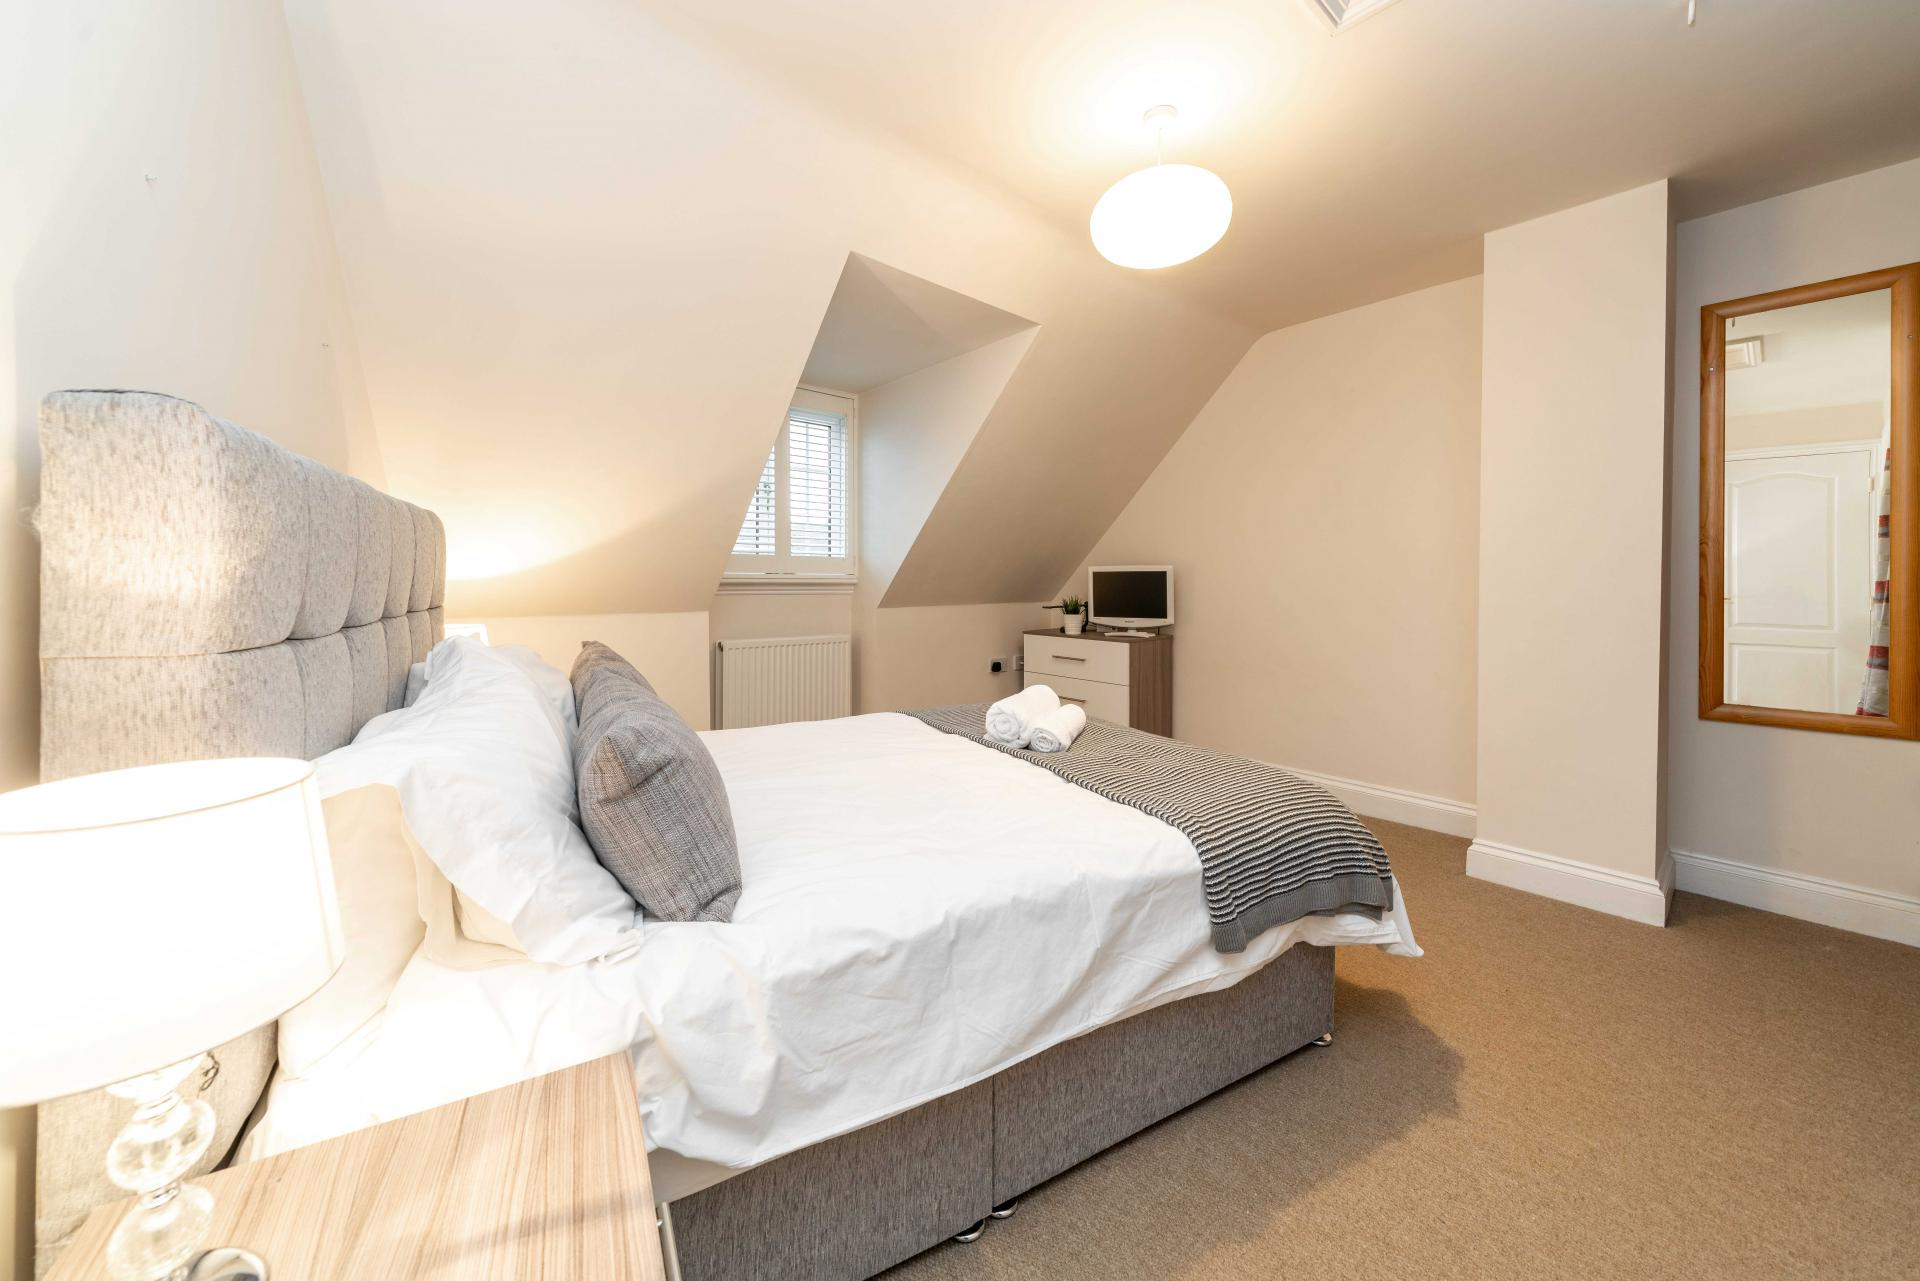 Bedrooms at Stowfield House